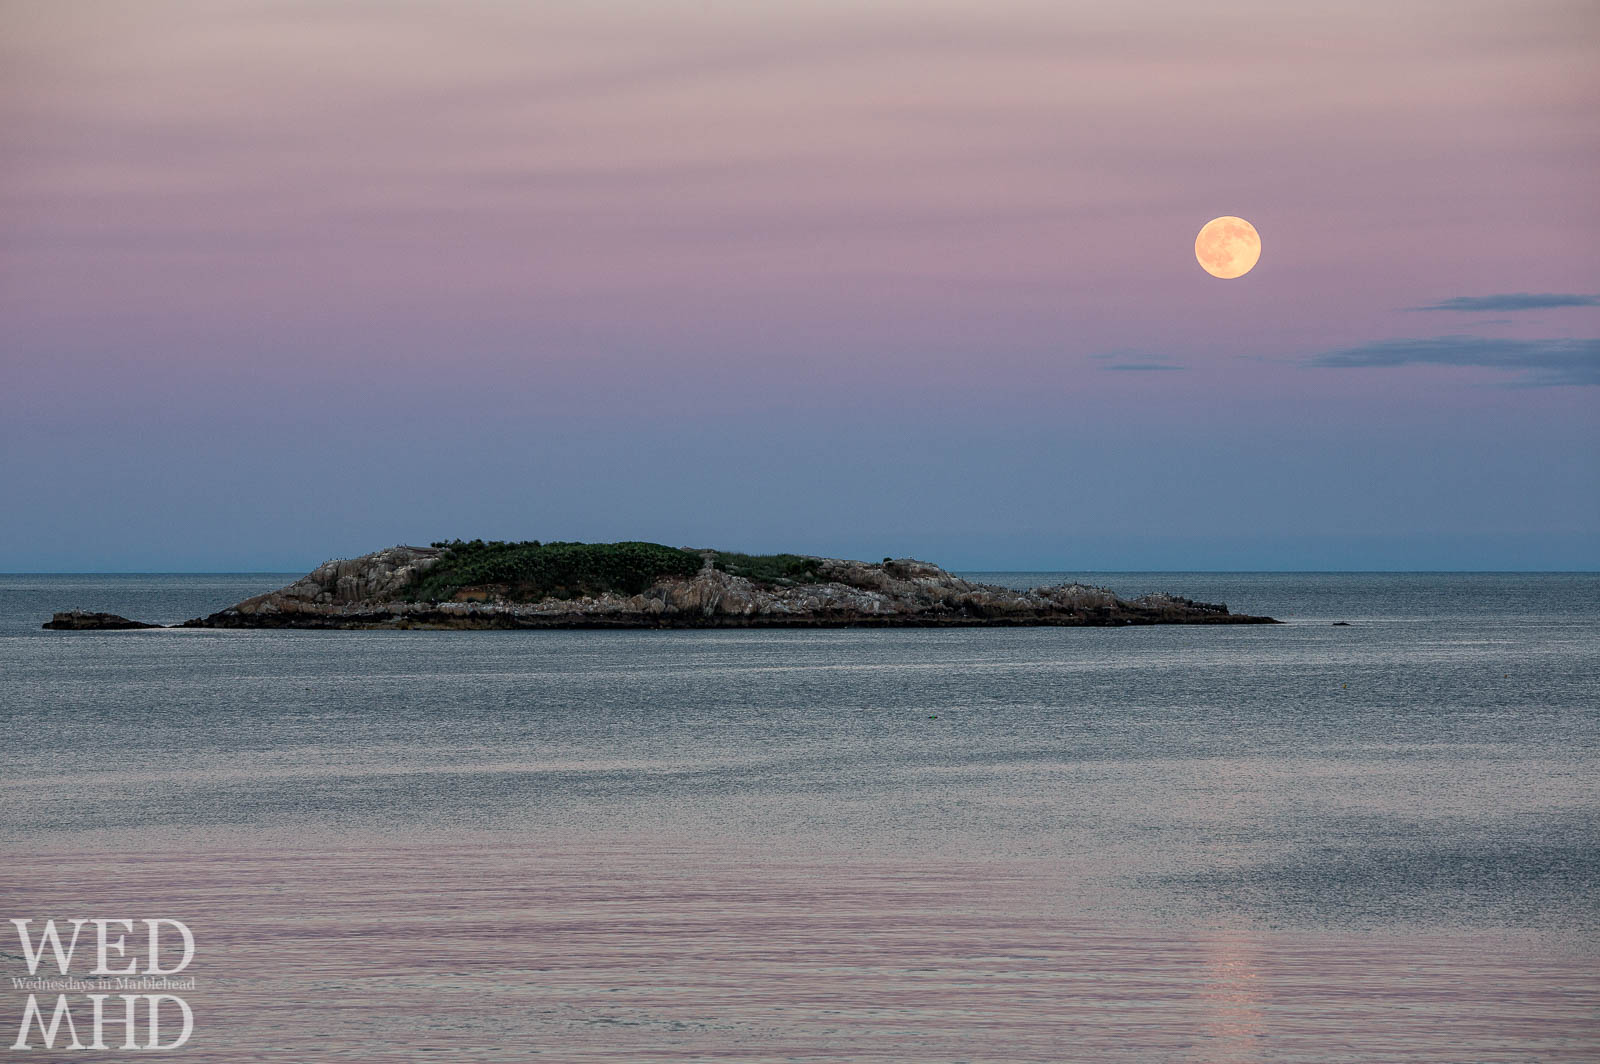 The full buck moon rises over the well-named Ram Island on a mid-July evening surrounded by shades of pink sunset light